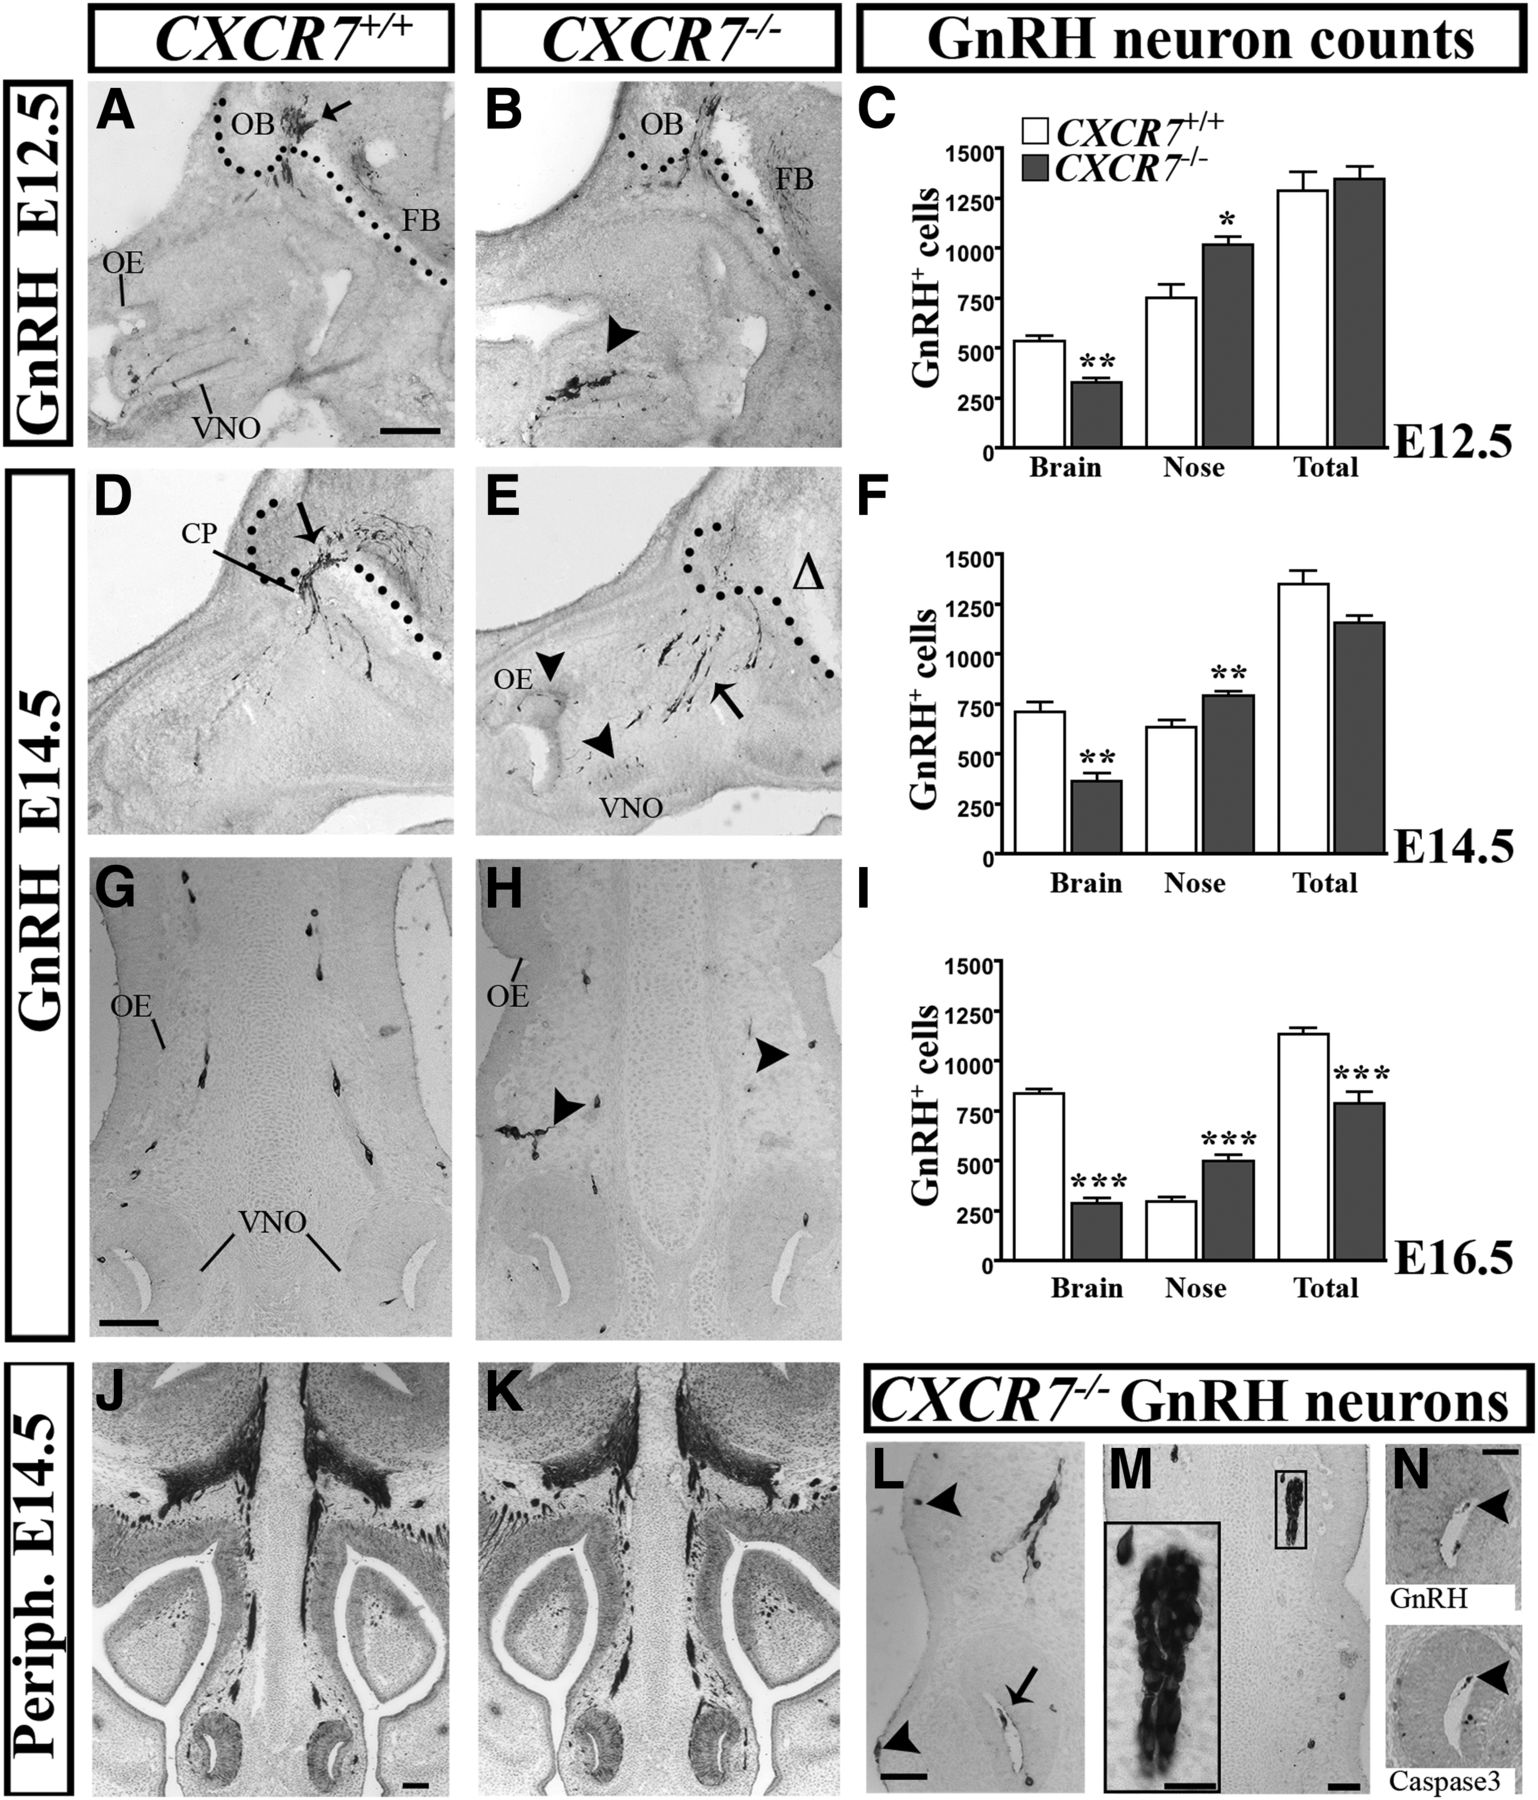 Cxc Chemokine Receptor 7 Cxcr7 Affects The Migration Of Gnrh Printed Circuit Board Captured With Jenoptik Prc14 Microscope Download Figure